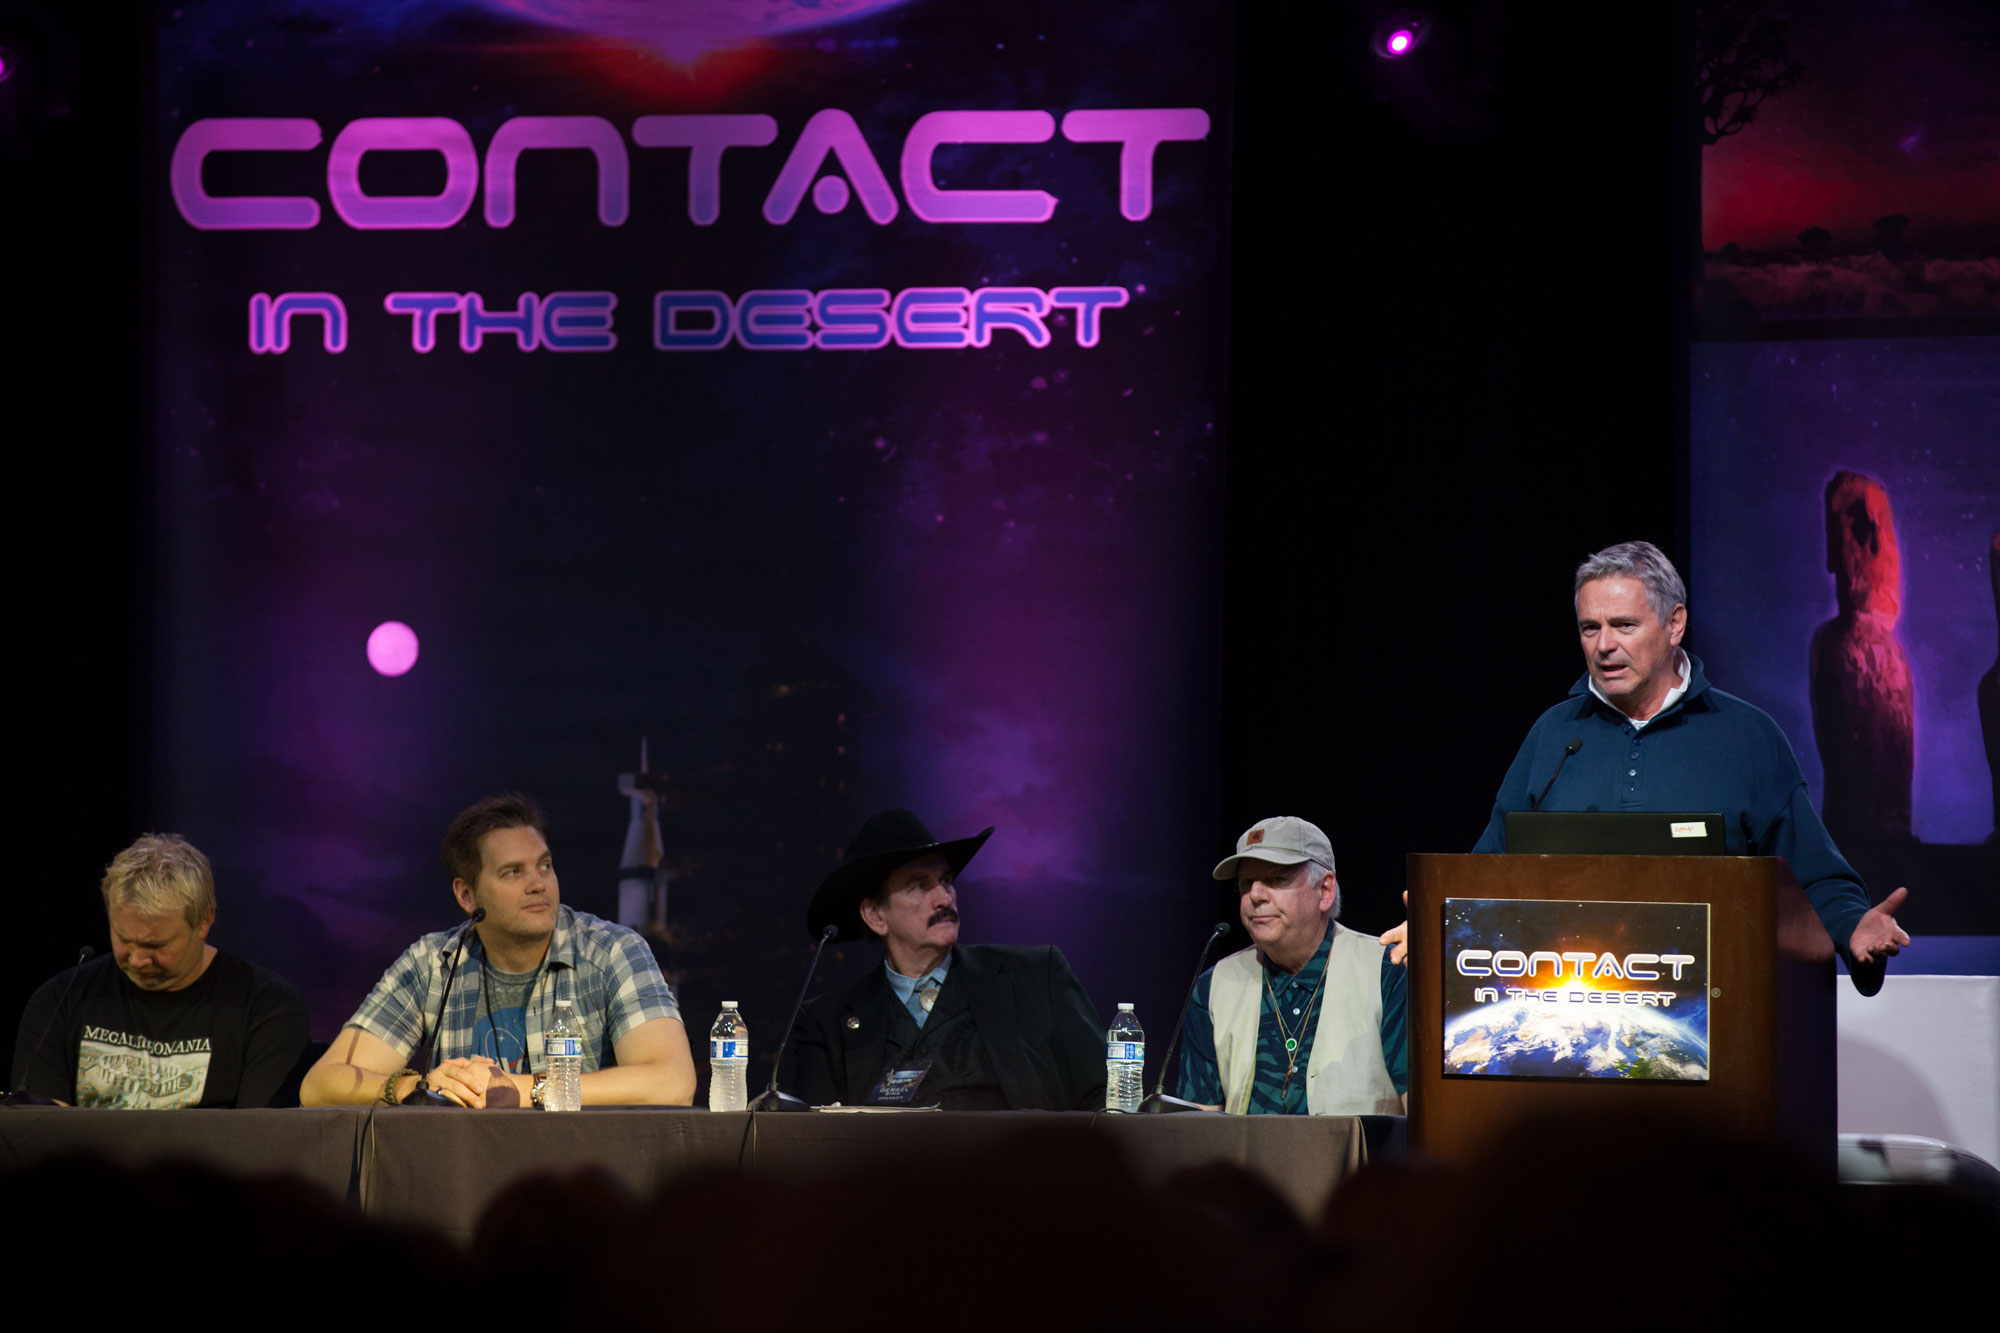 contact-in-the-desert-ufo-conference-panels-2